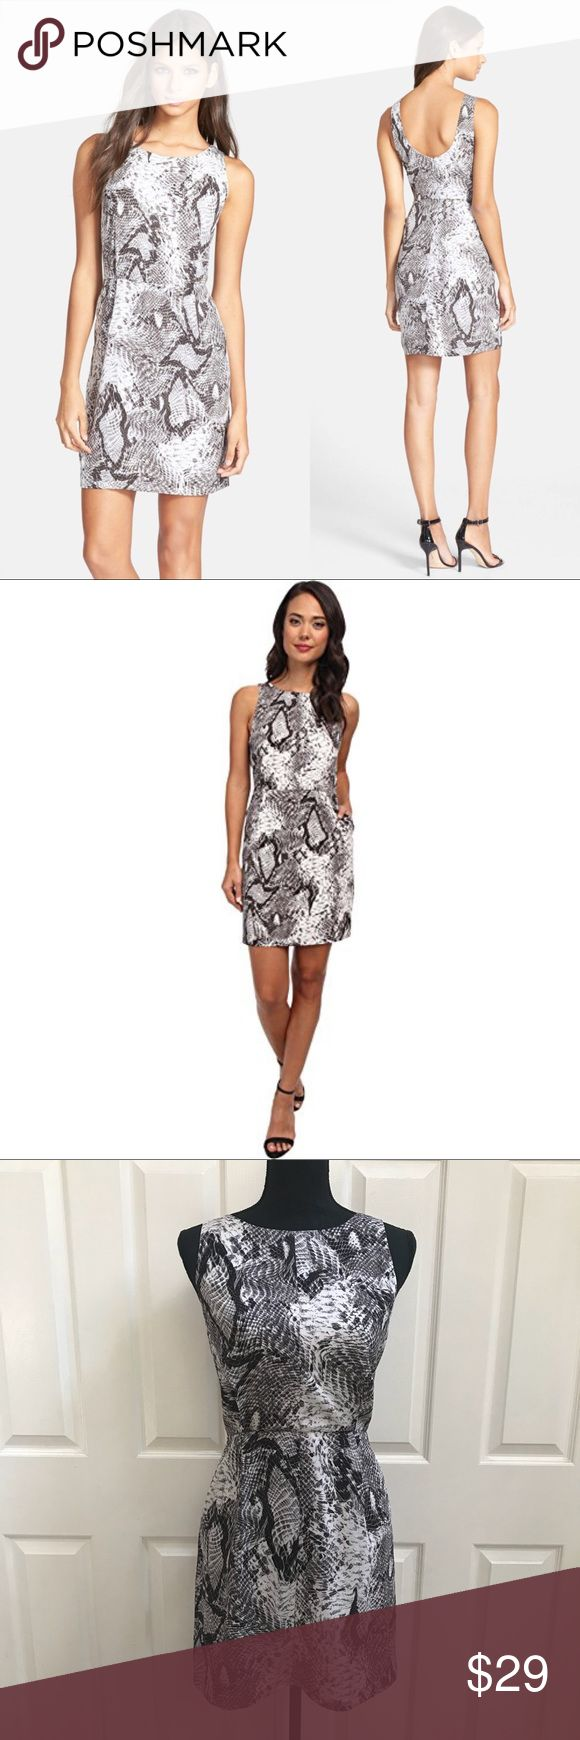 Nordstrom BB Dakota Snake Print Shift Dress Sold out style on Nordstrom.com Adorable sleeveless dress with low back- Snake gray and white print. Size 4 Worn once, like new condition  A bold snakeskin print covers a smooth shift dress that tastefully shows off skin with a scooped back neckline. Hidden back-zip closure. Lined. 100% polyester. BB Dakota Dresses Mini